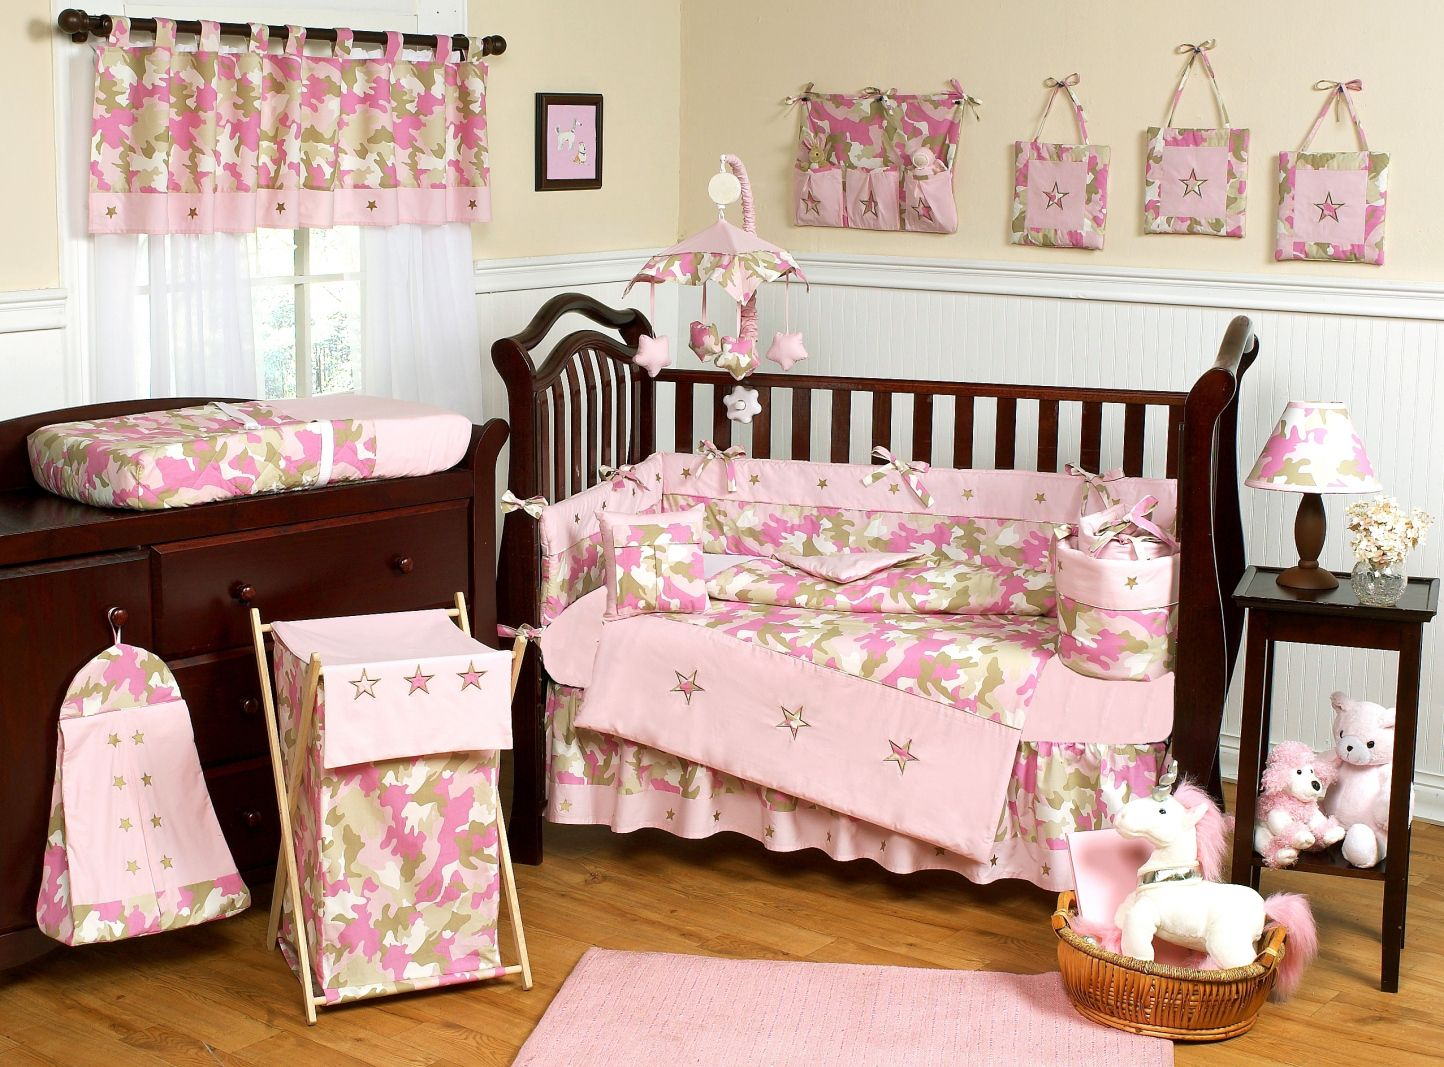 Camo Baby Room Themes Interior Paint Color Ideas Check More At Http Www Chulaniphotography Com C Crib Bedding Girl Pink Crib Bedding Baby Girl Crib Bedding